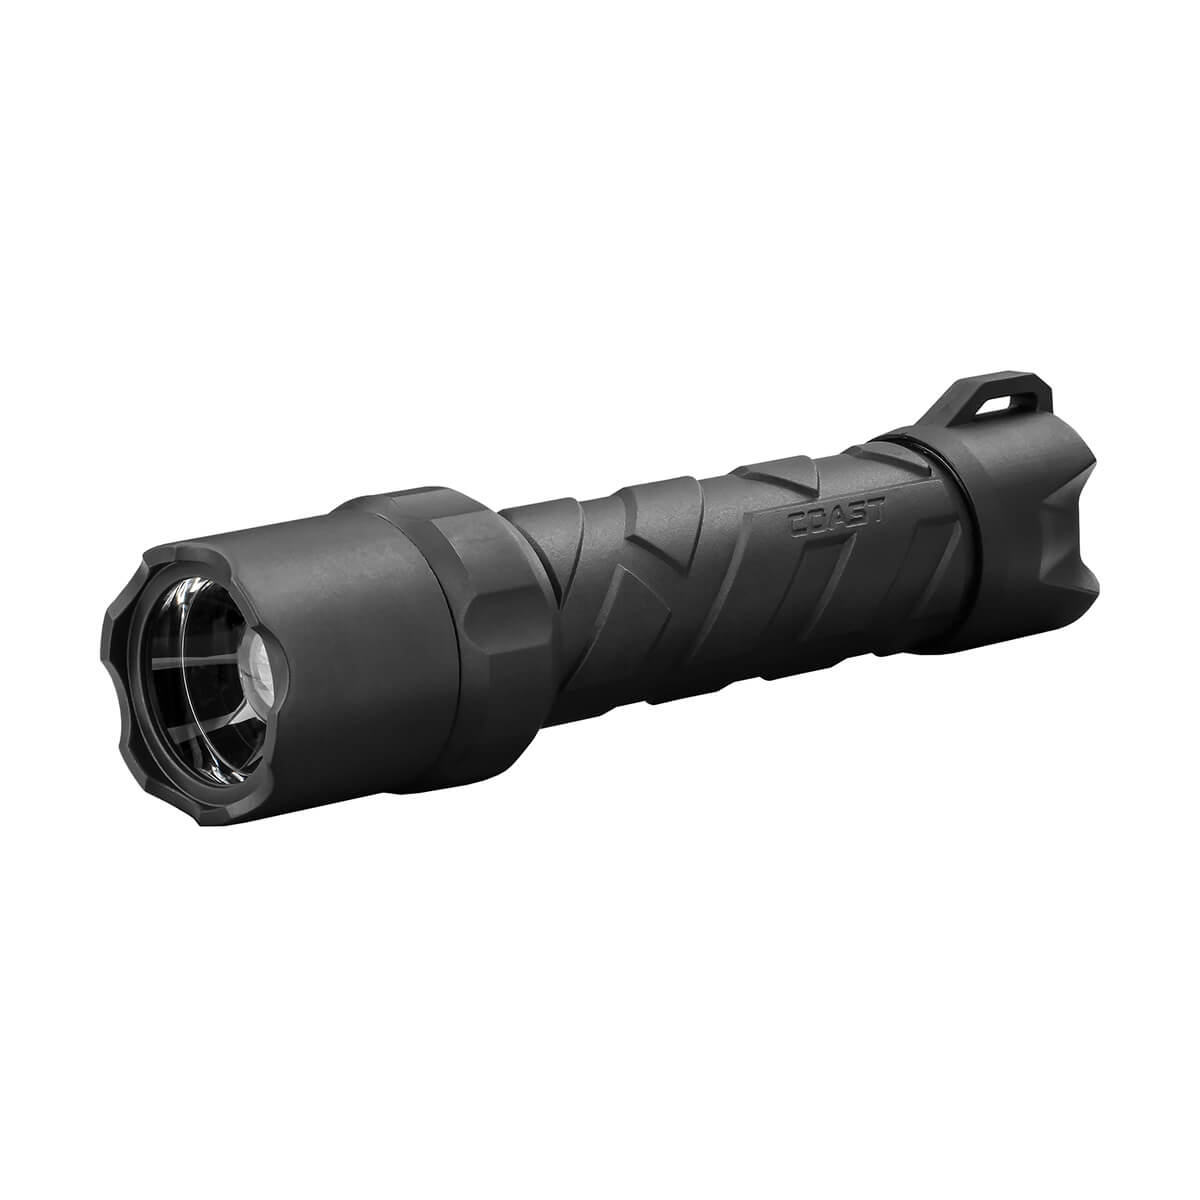 710 Lumen Flashlight